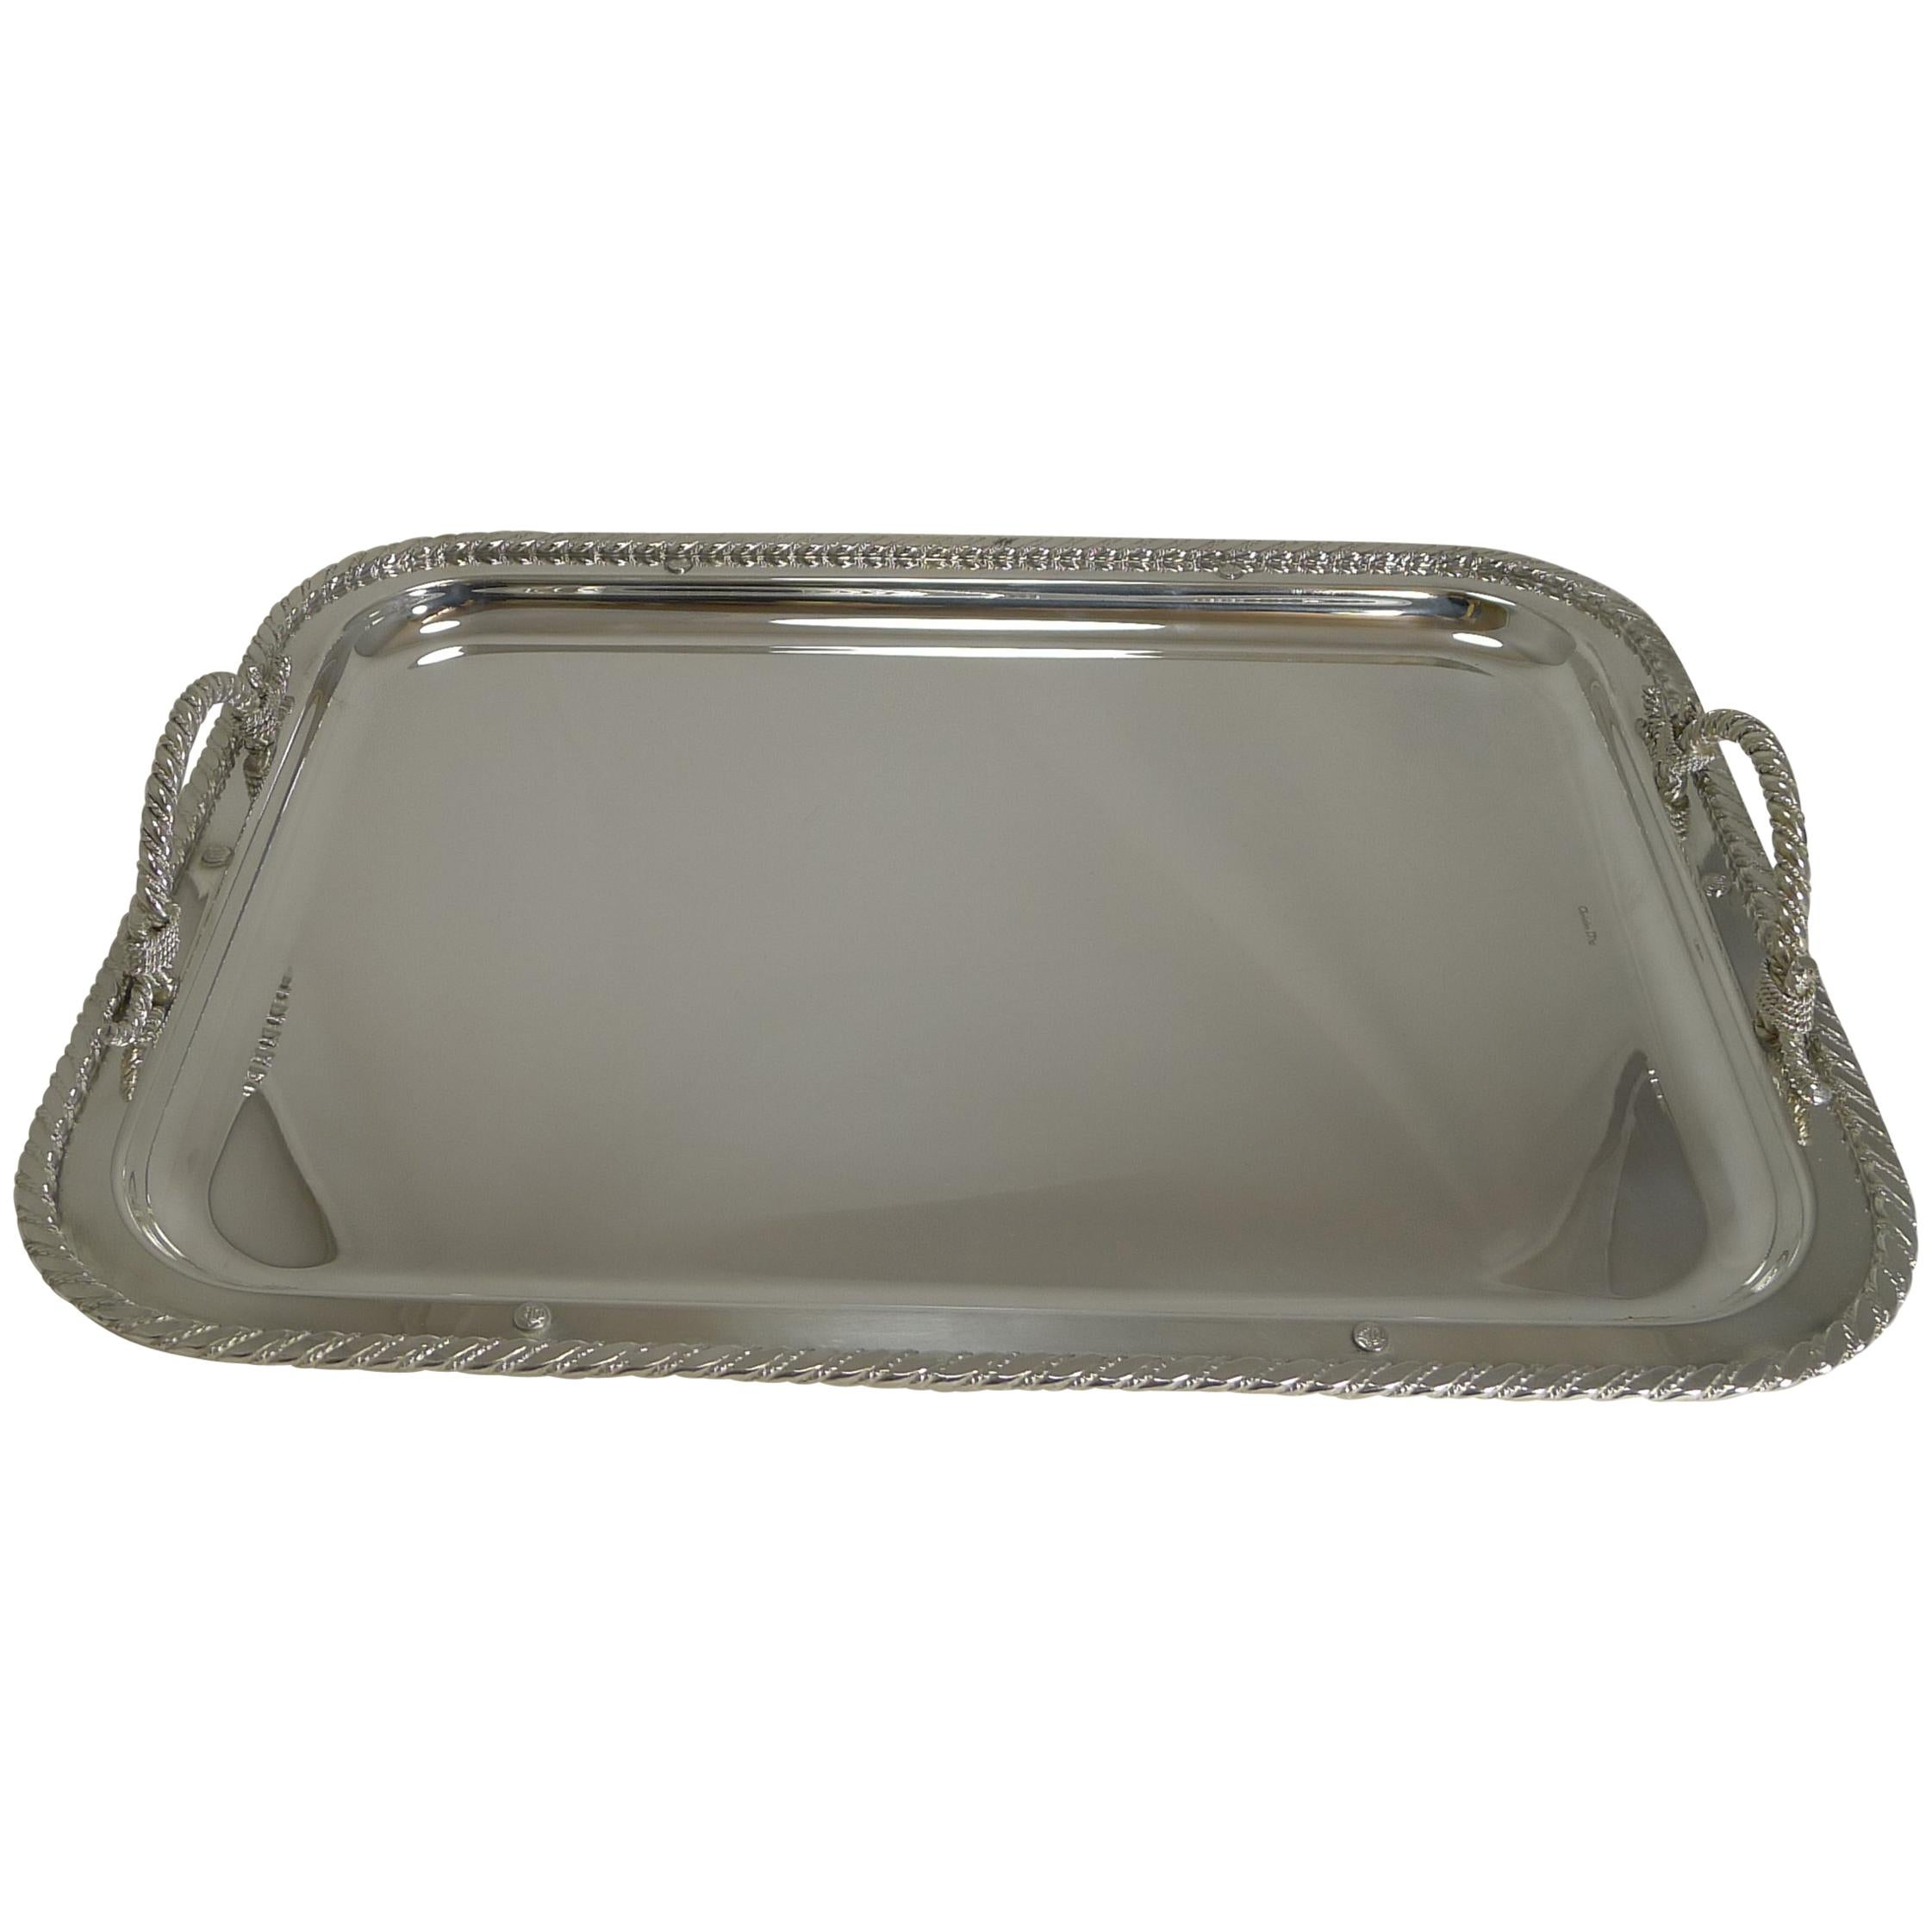 Vintage Christian Dior Silver Plated Serving Tray, circa 1970